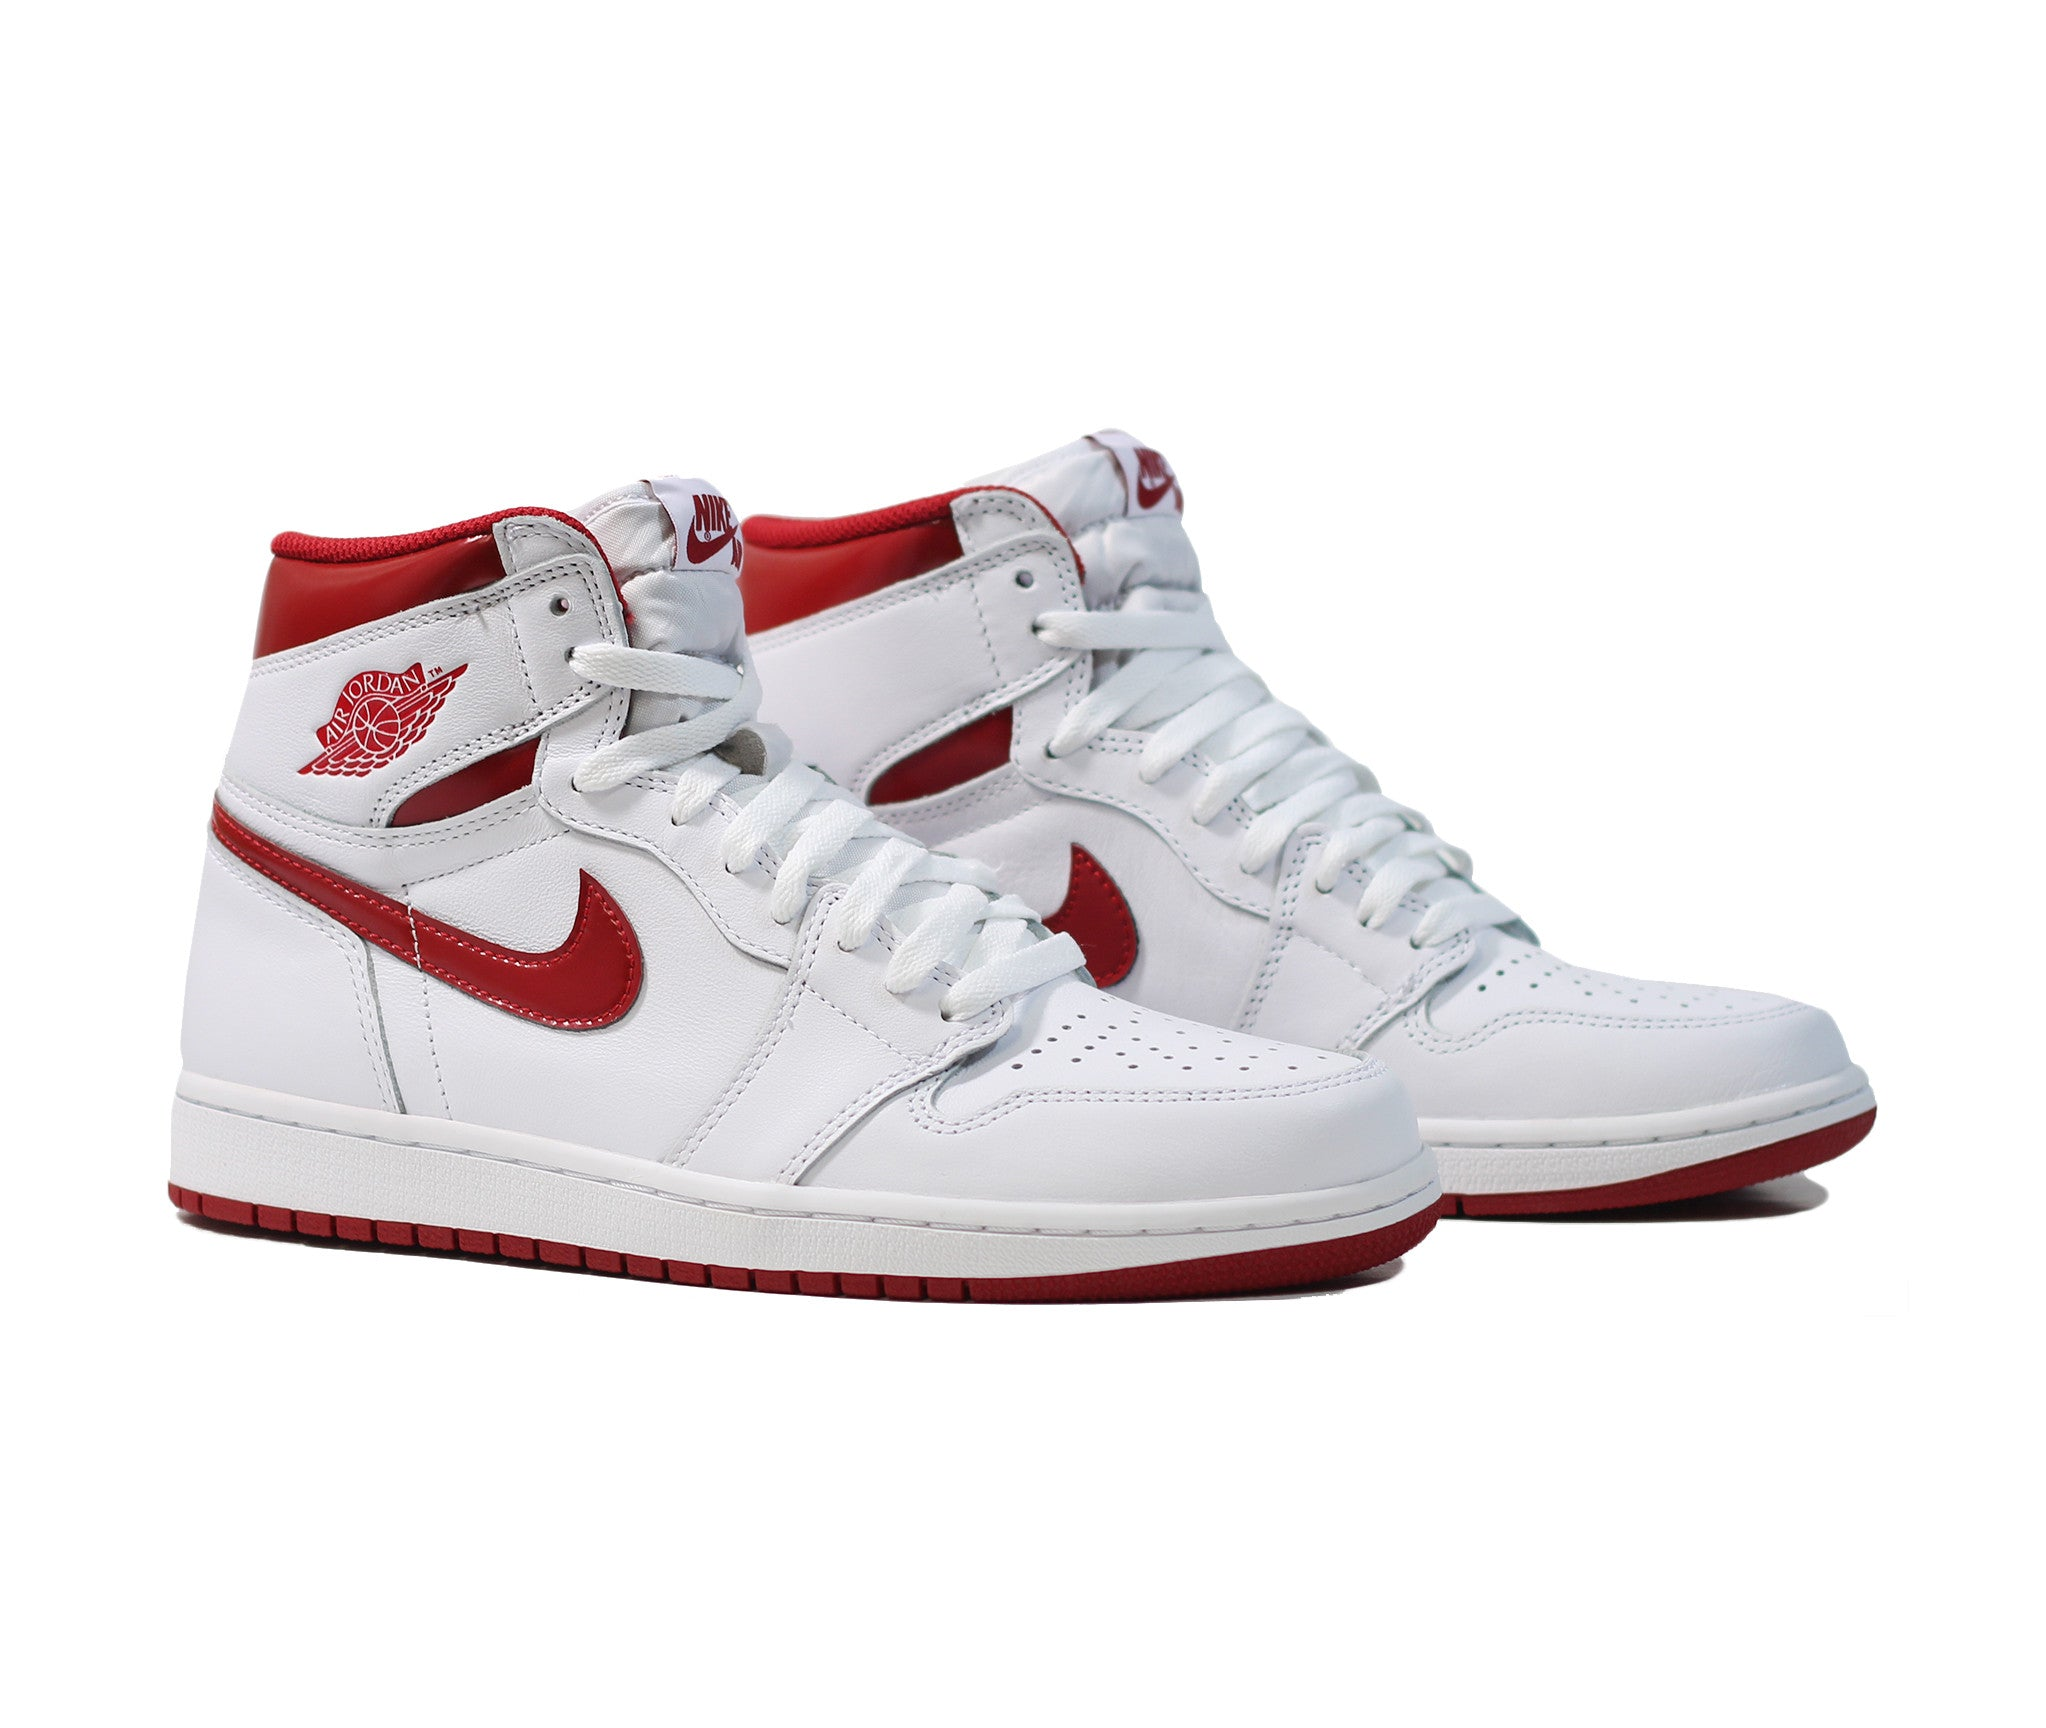 edad5157228 Air Jordan 1 Retro High OG 'Metallic Red' - Varsity Red/White – Sneaker  Lounge